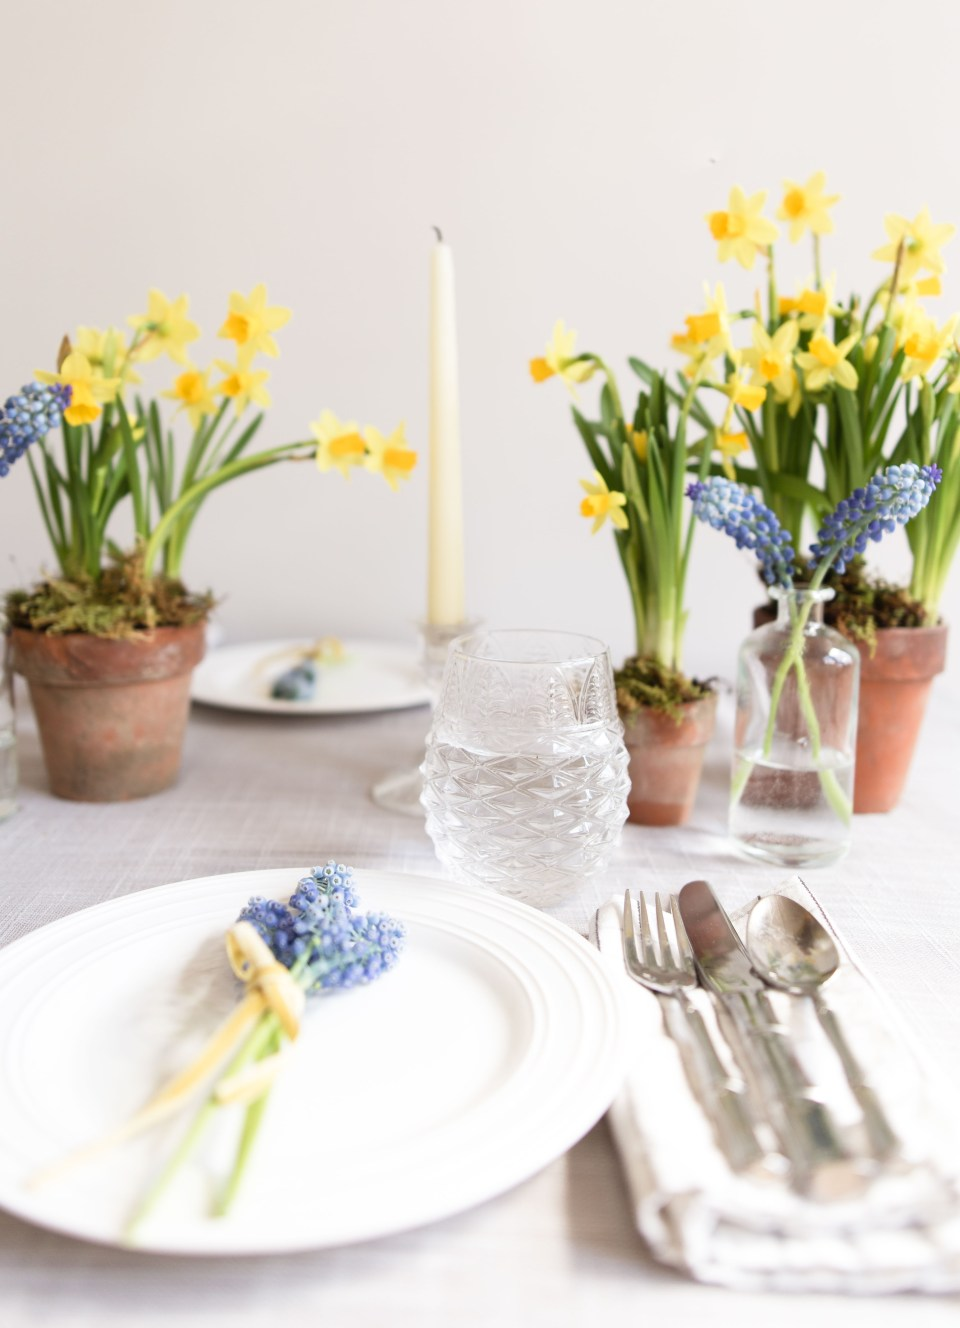 How to Create an Elegant Table Setting for Spring